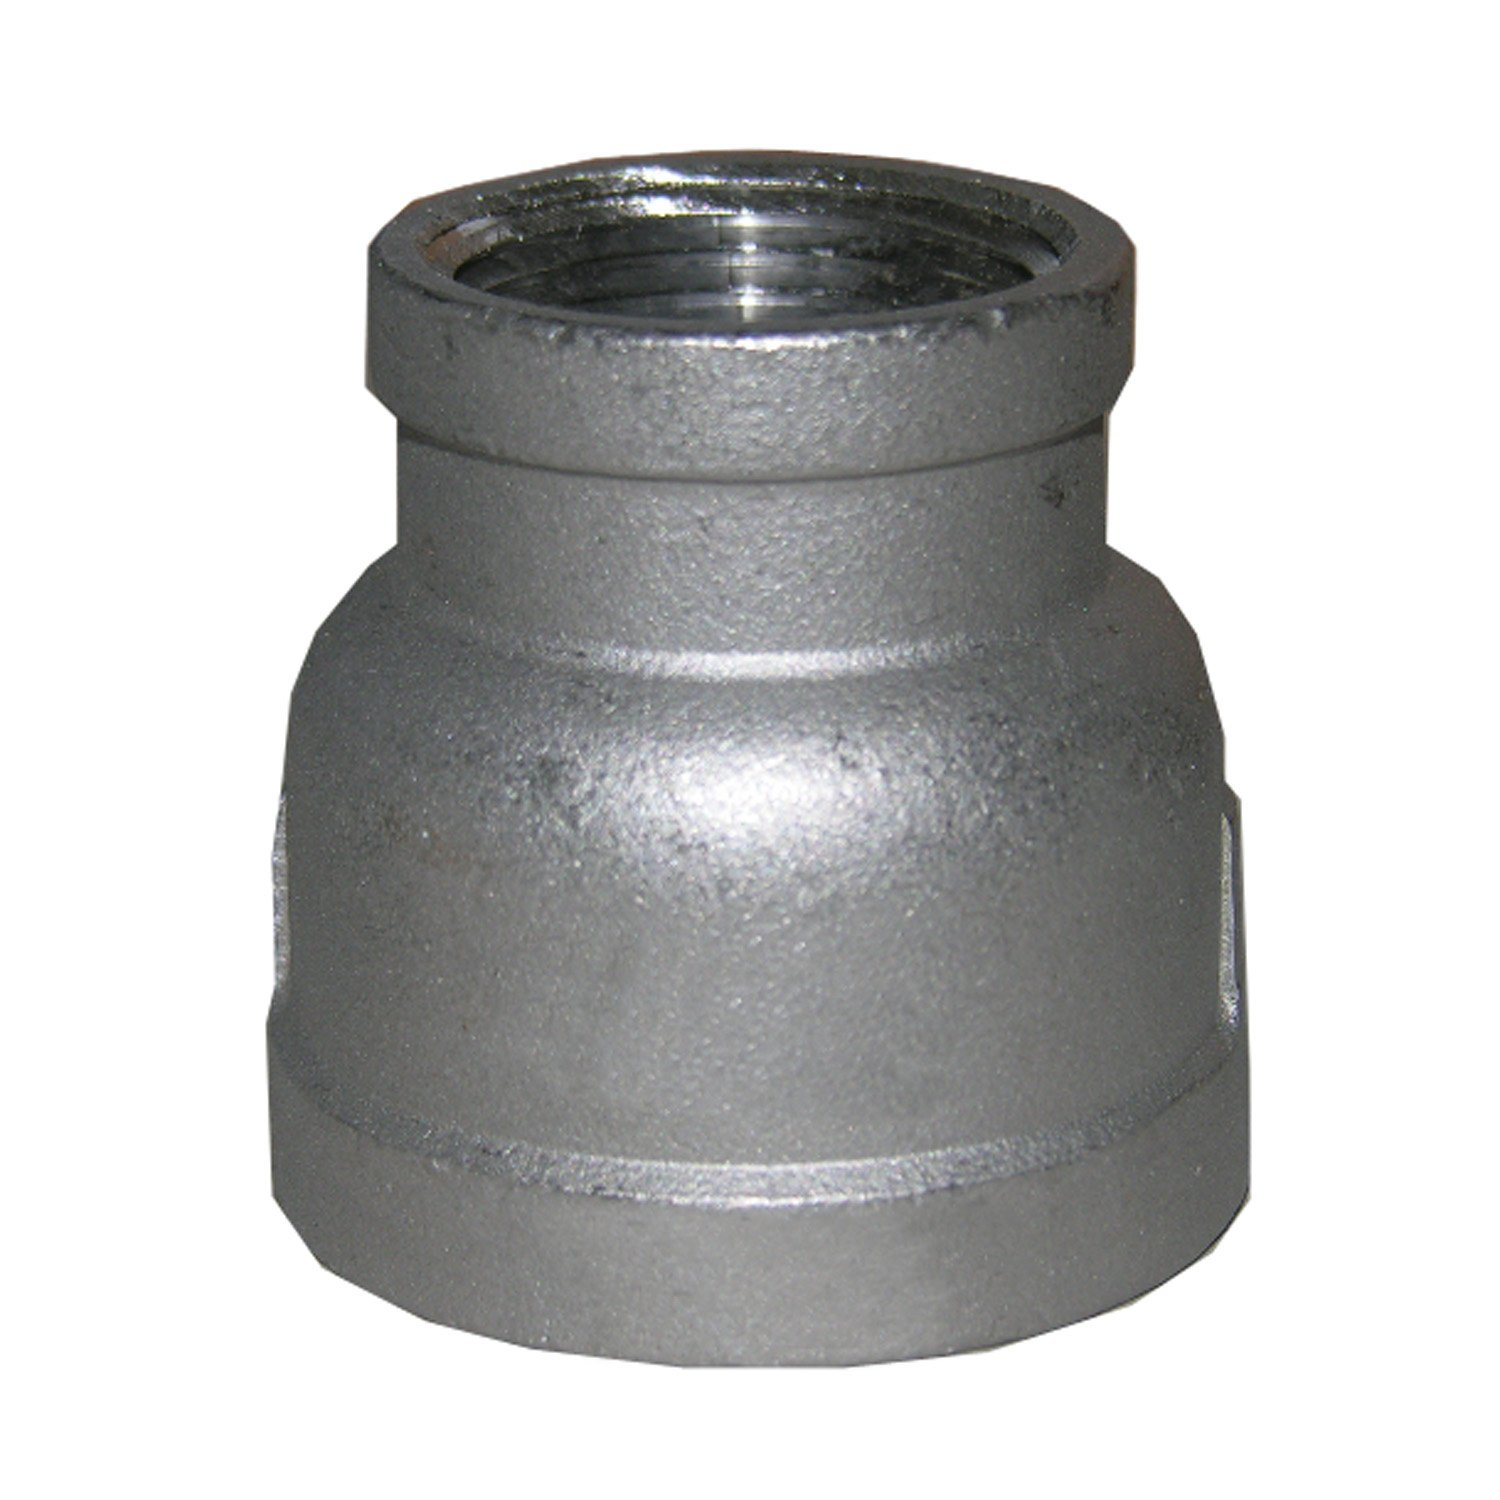 LASCO 32-2810 Stainless Steel Bell Reducer with 1 1/4-Inch Female Pipe Thread and 1-Inch Female Pipe Thread